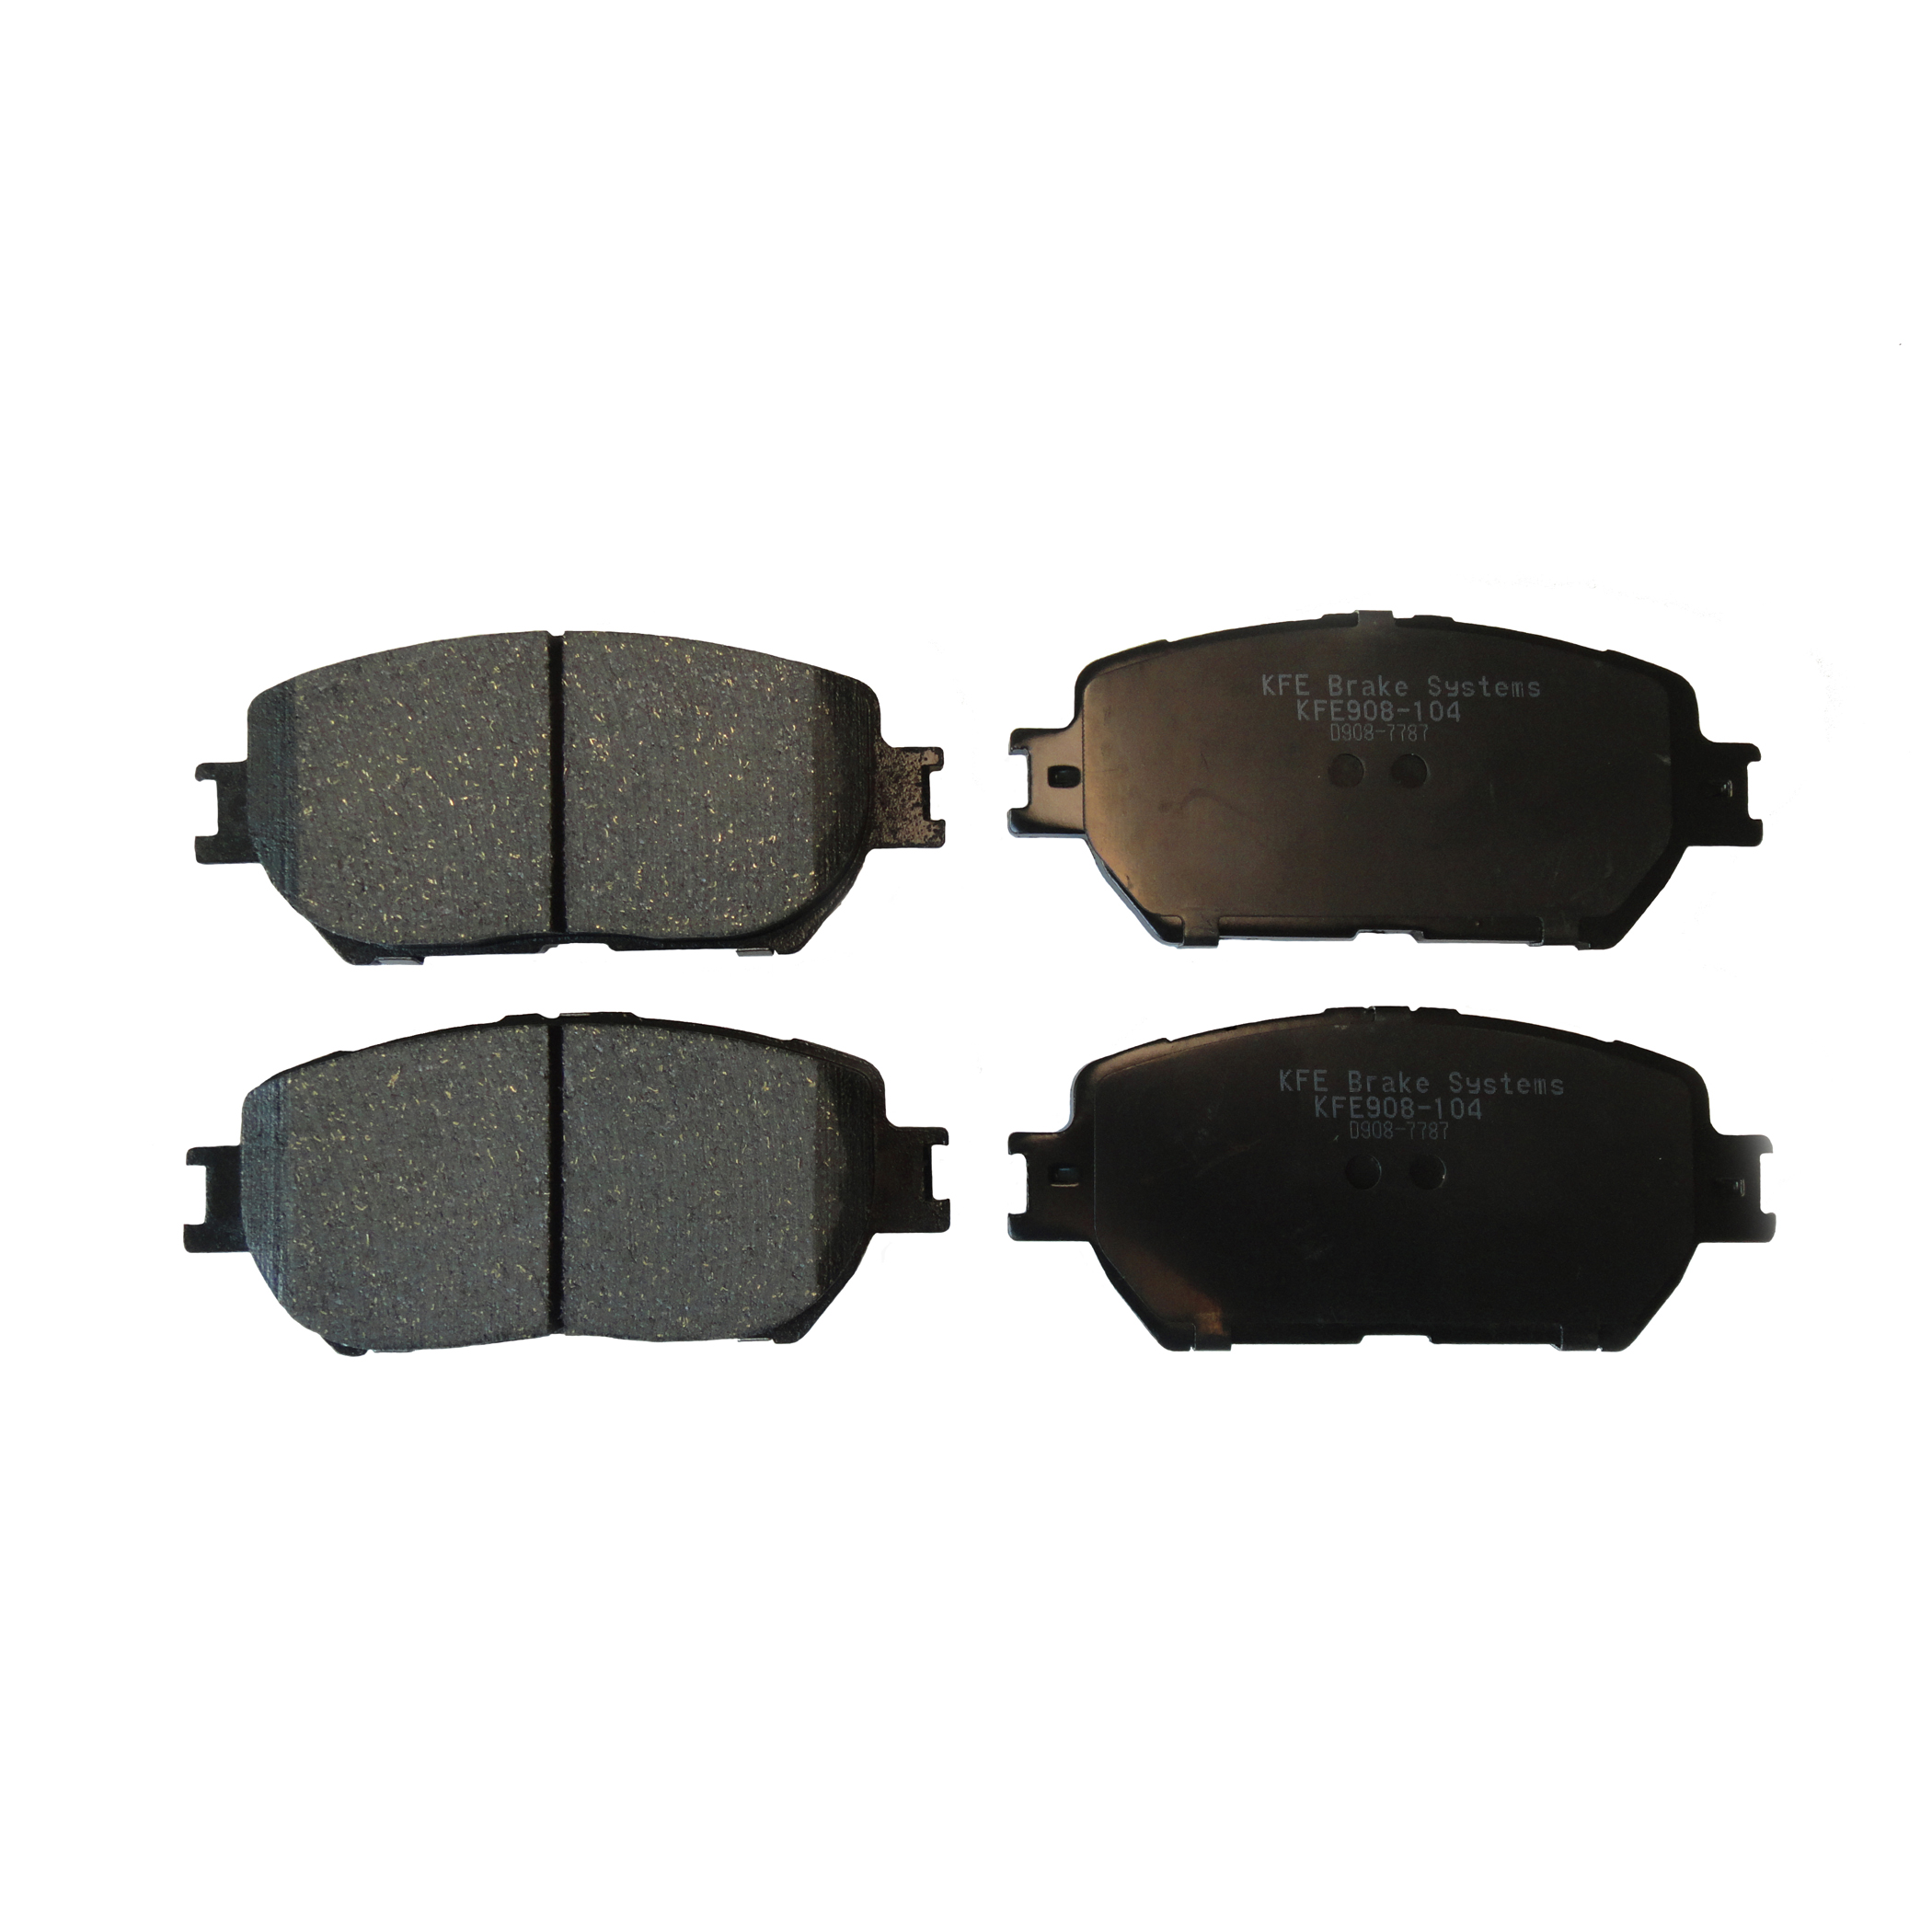 KFE908-104 Ultra Quiet Advanced Brake Pad